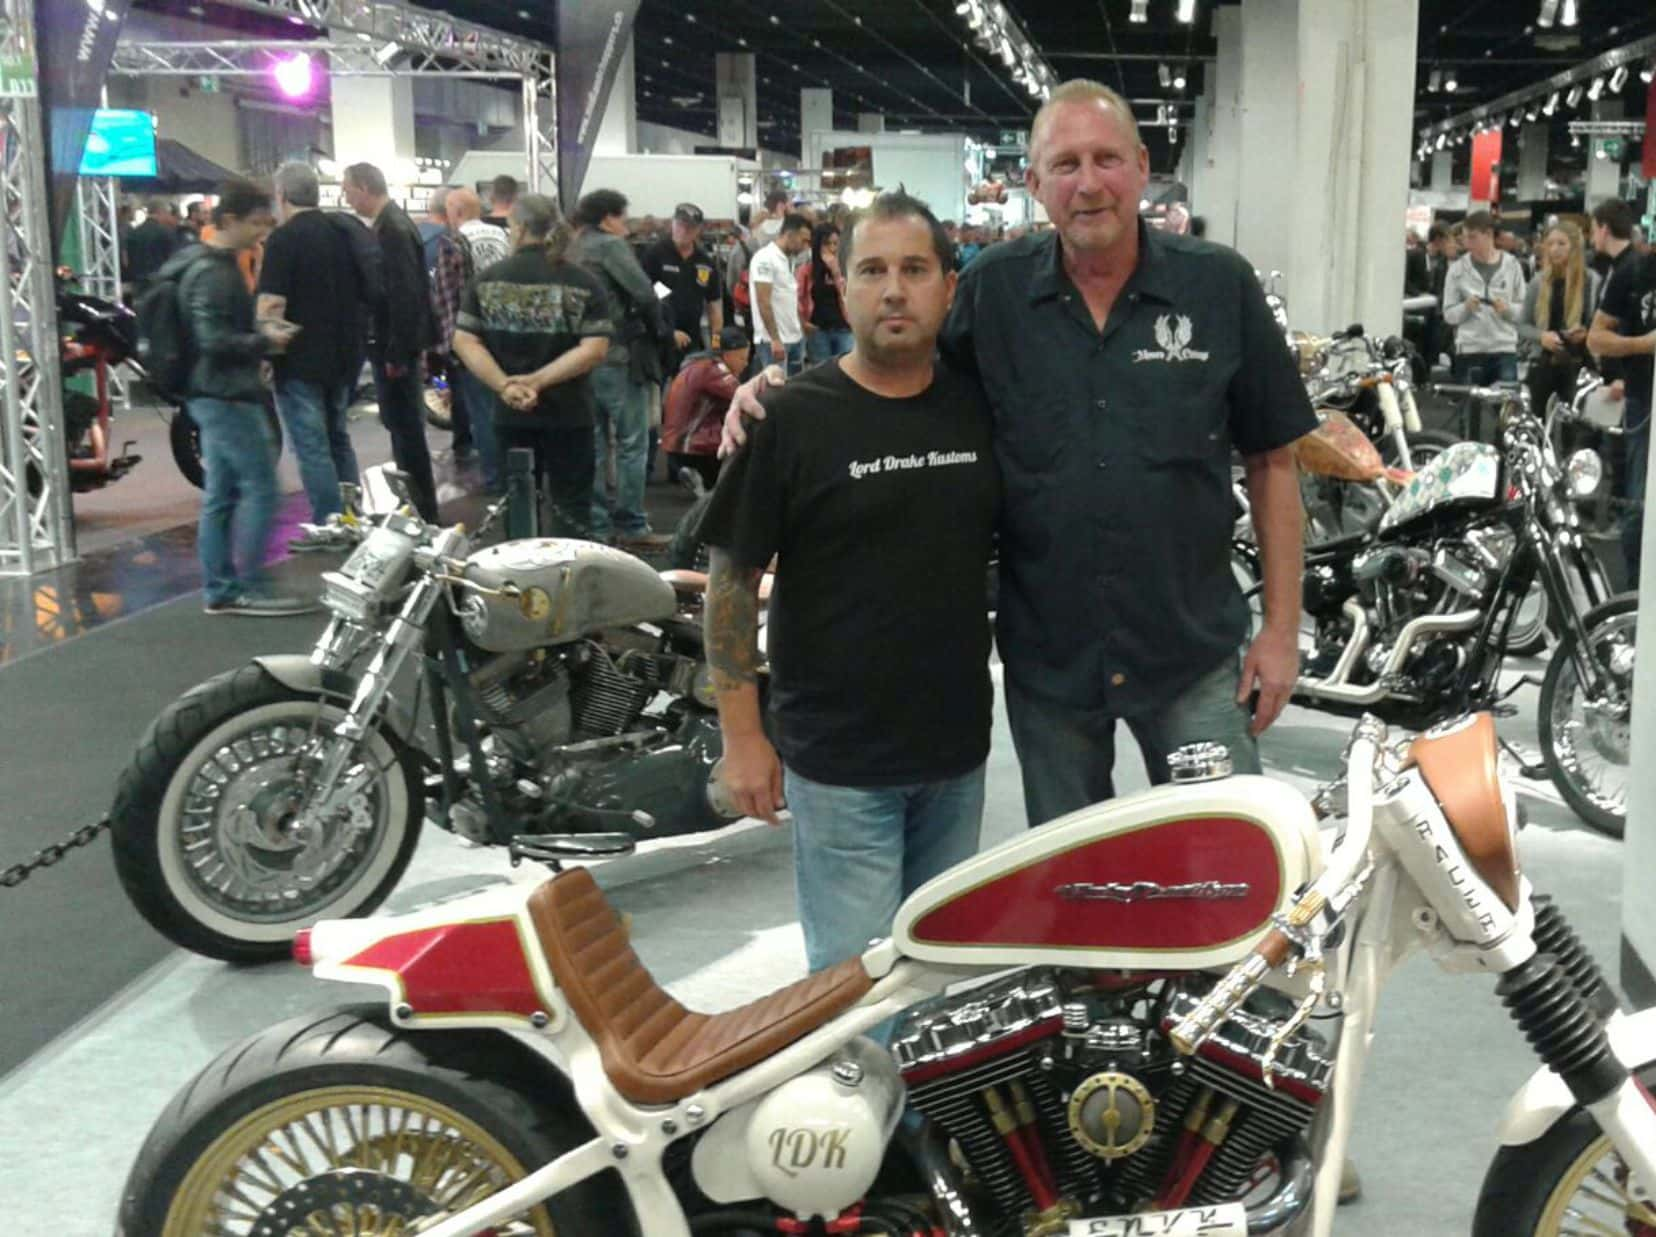 francisco ali manen - lord drake kustoms - larry moore custom cycles